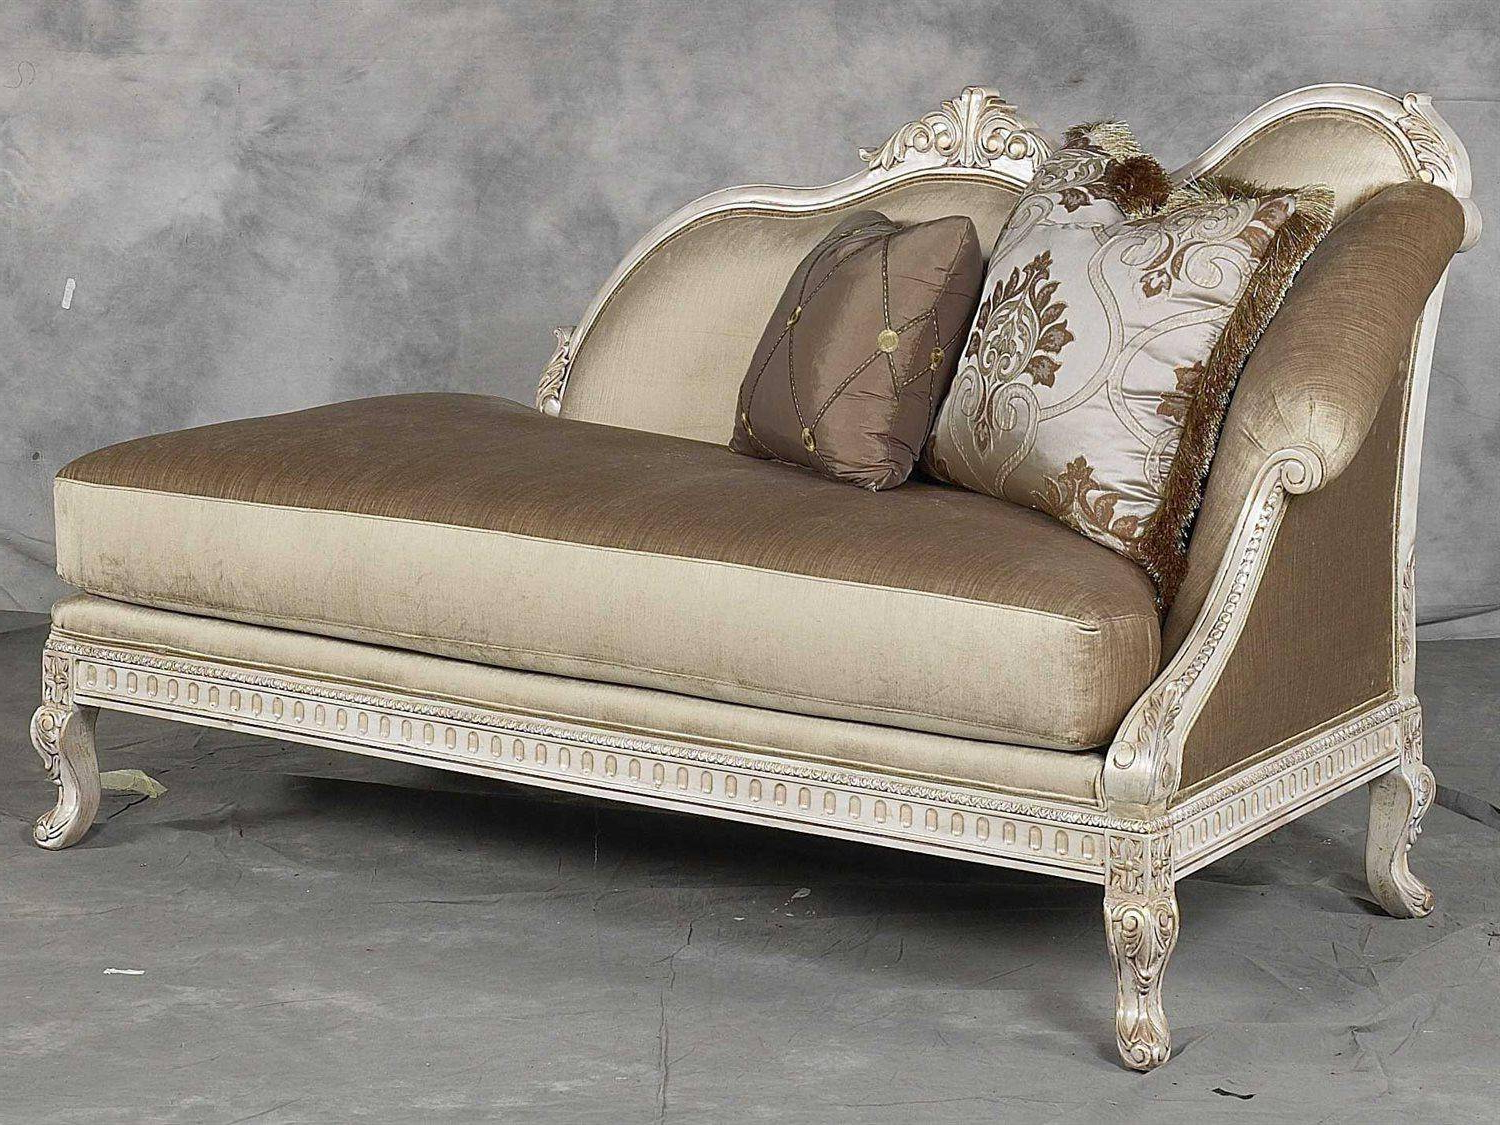 Most Recently Released Pearl Chaise Lounges Throughout Benetti's Perla Luxury Golden Pearl Silk Chenille Silver Gold Frame Chaise Lounge (Gallery 13 of 25)